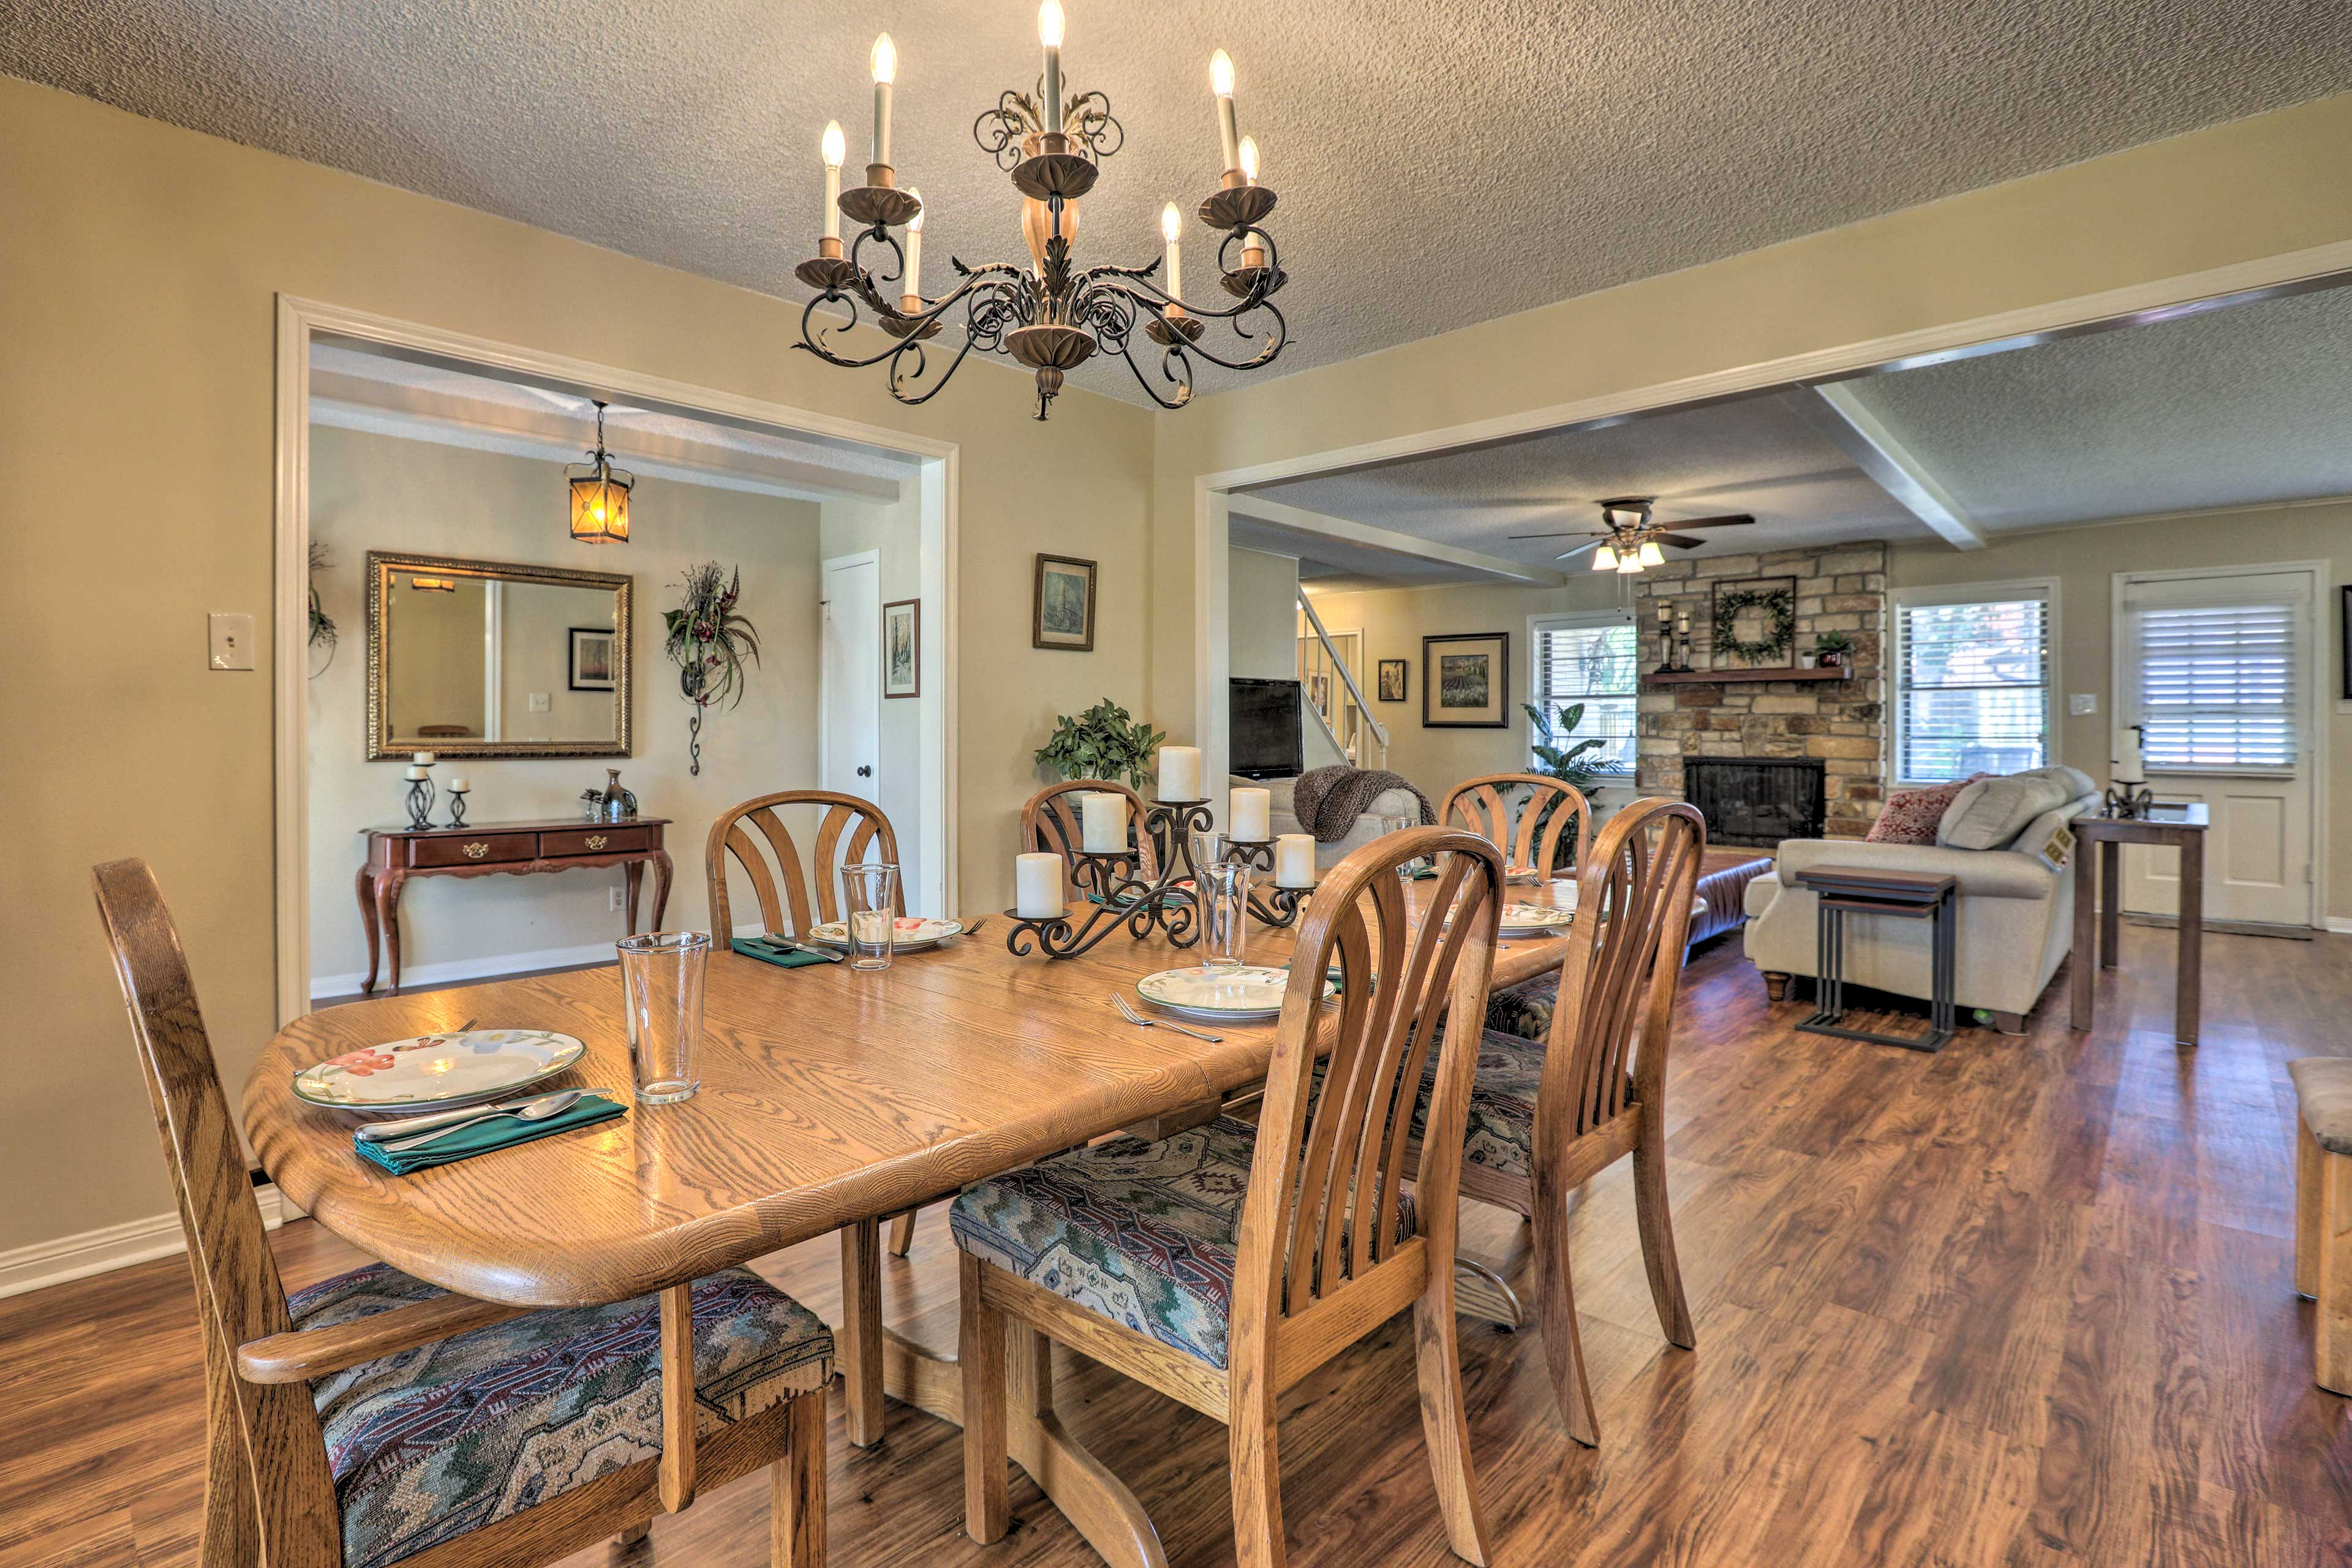 The vacation rental home has everything you need for a fun family getaway.